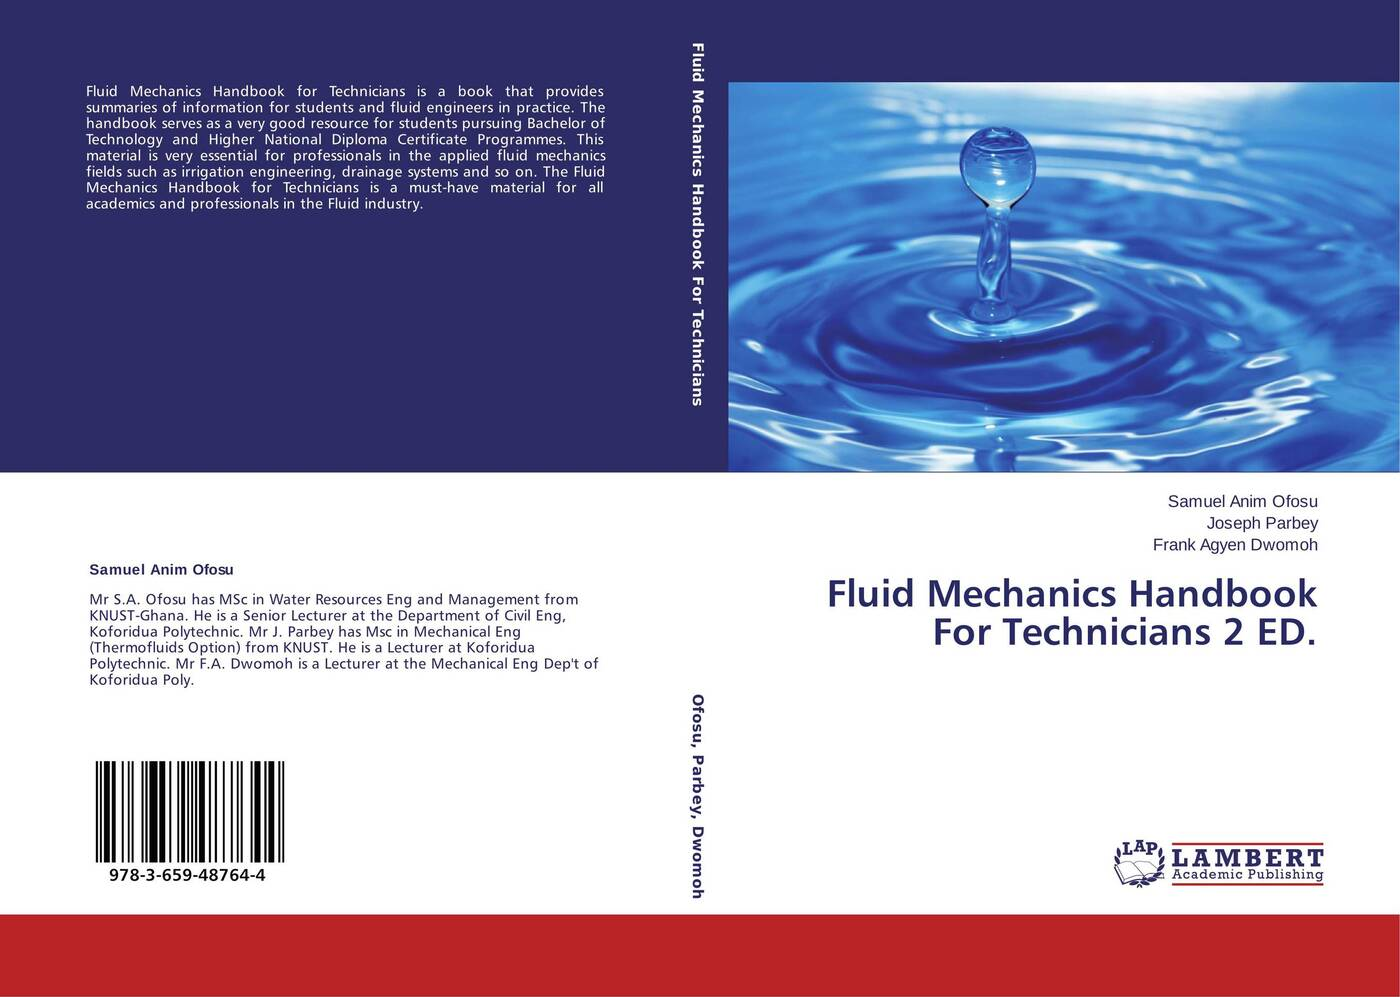 Samuel Anim Ofosu,Joseph Parbey and Frank Agyen Dwomoh Fluid Mechanics Handbook For Technicians 2 ED. yasuhide shindo electromagneto mechanics of material systems and structures